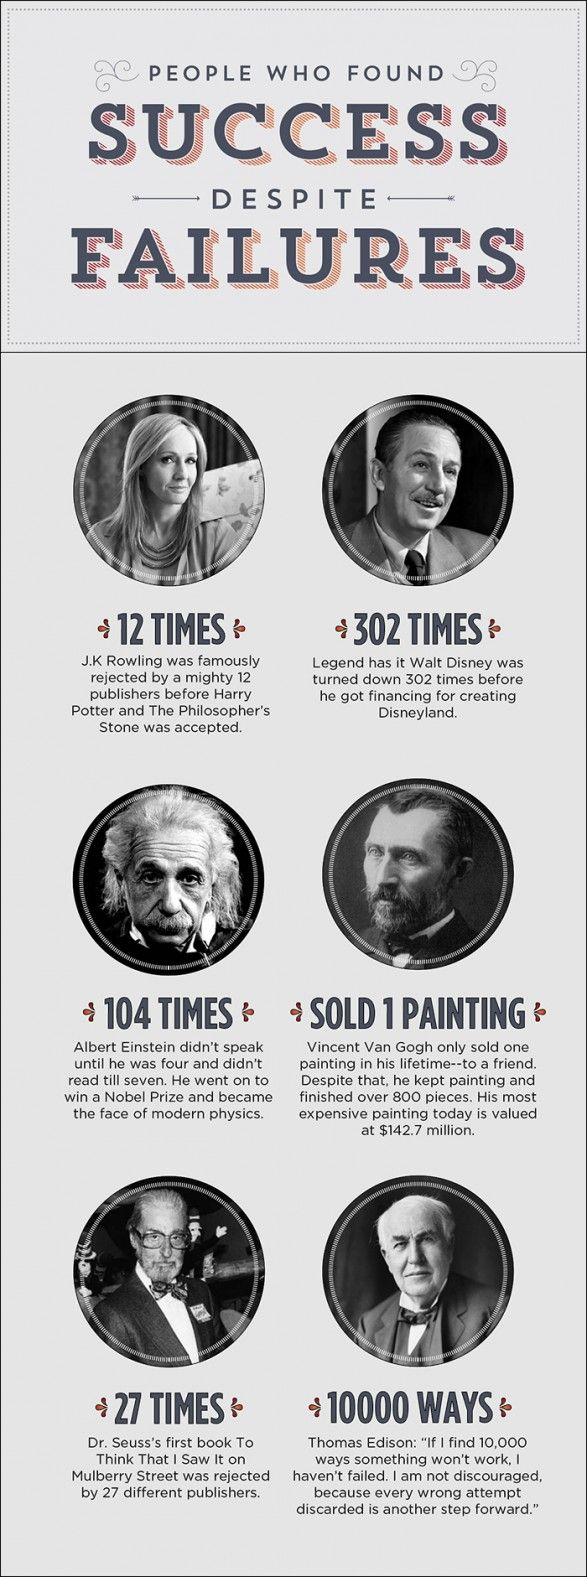 People Who Found Success Despite Failures. How's that for motivation!